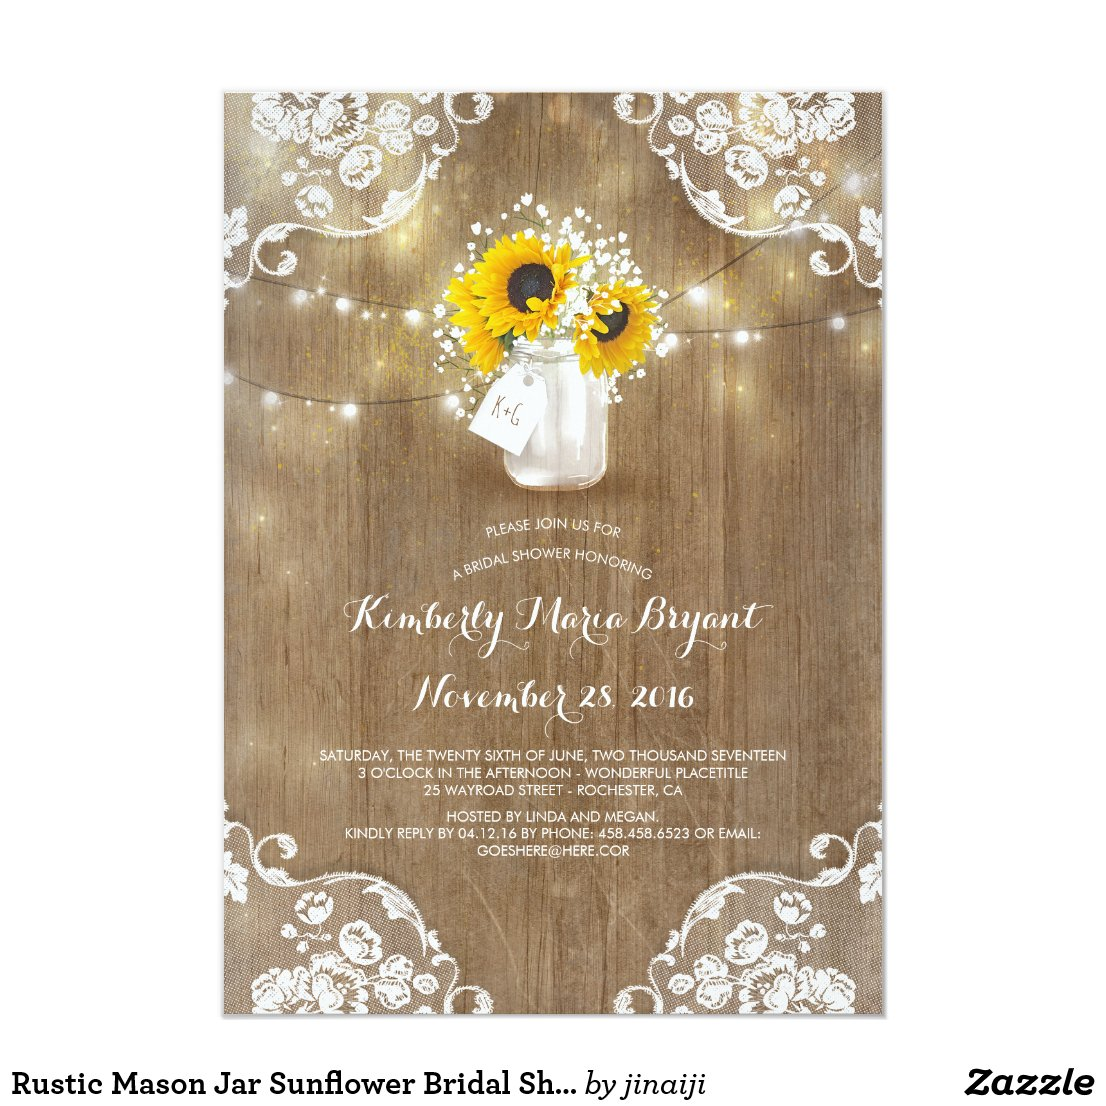 Mason Jar and Sunflowers Rustic Bridal Shower